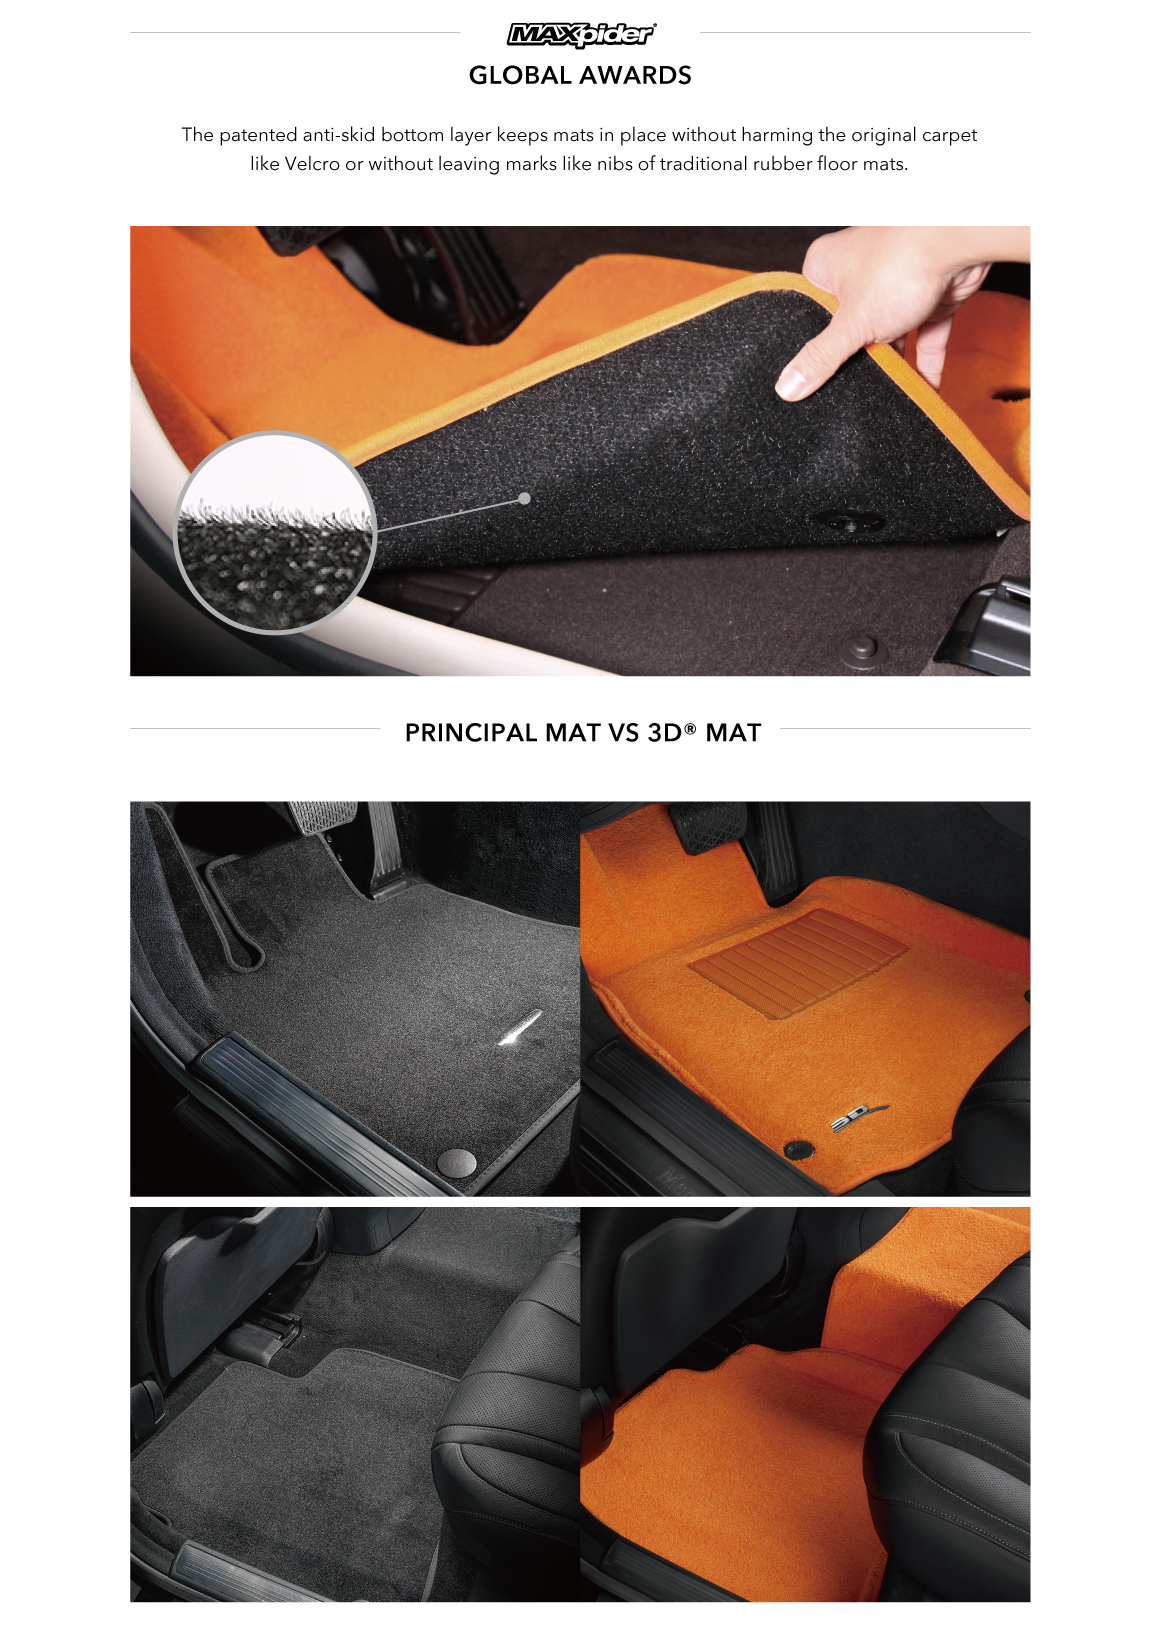 Volvo S60 Award Winning Car Floor Mats